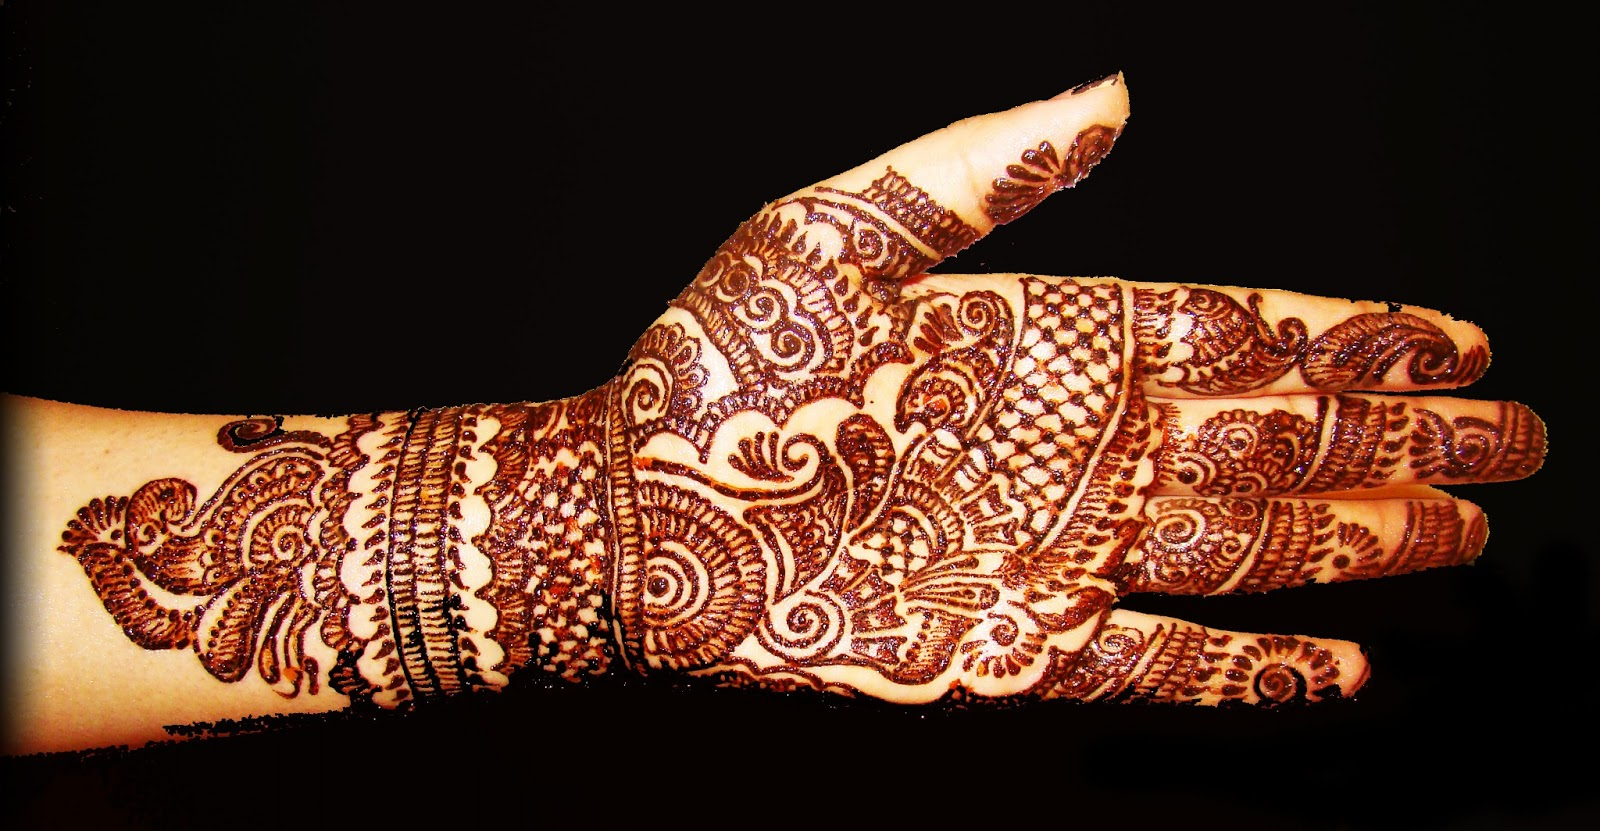 Mehandi designs 2013 bridal mehndi designs 2013 high for Home wallpaper designs 2013